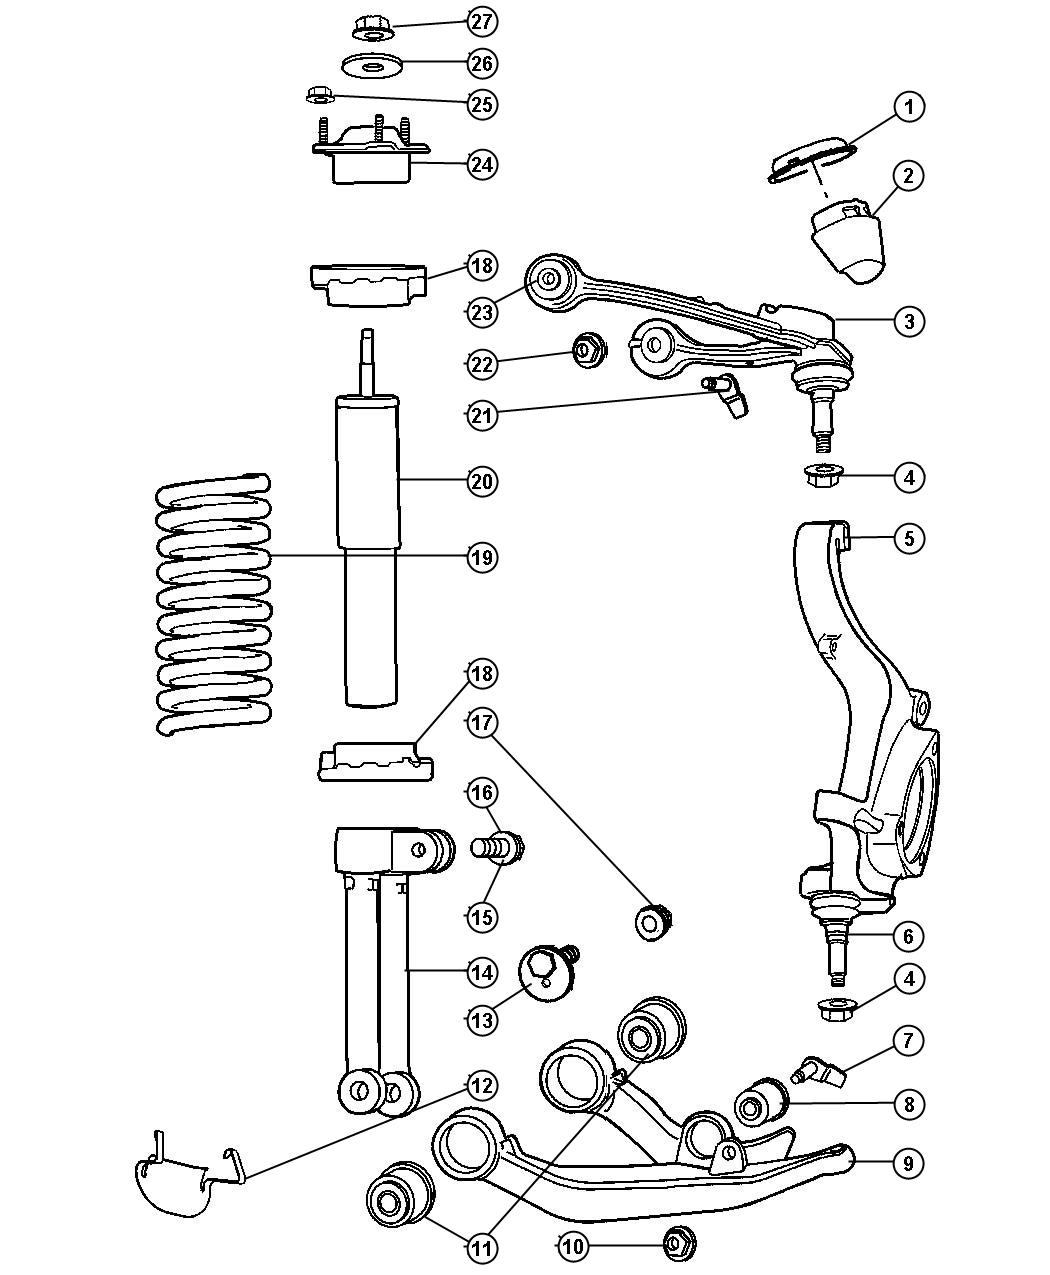 Jeep Liberty Suspension Diagram Pictures to Pin on